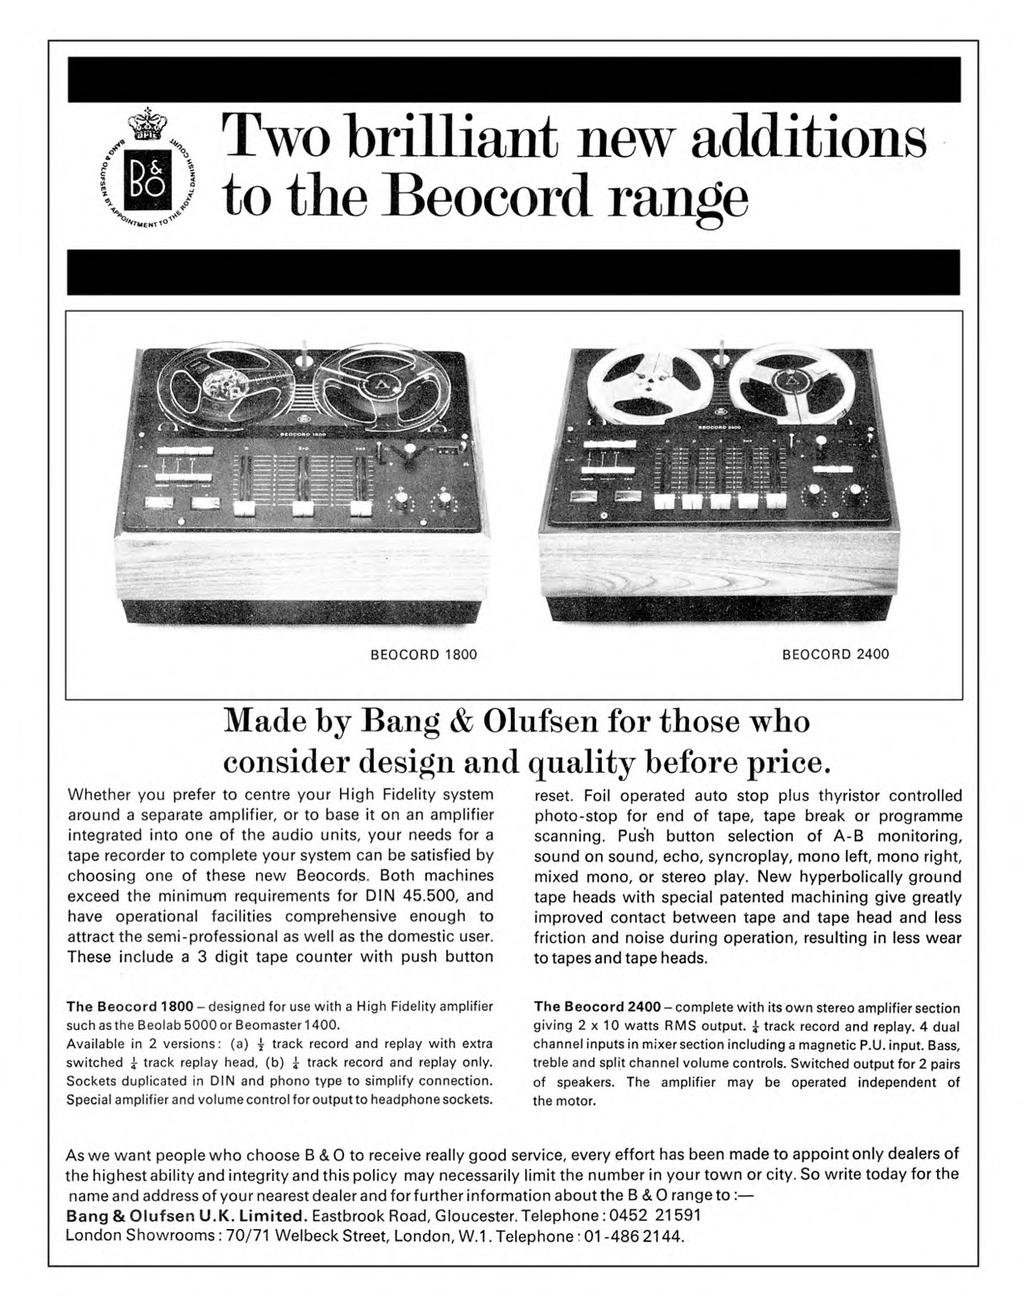 I Ib January 1970 Recording Magazine The Man Who Invented Magnetic Possibly Related To Quotprevent Treble Dull In Volume Controlquot Circuits Two Brilliant New Additions Beocord Range M 1800 2400 Made